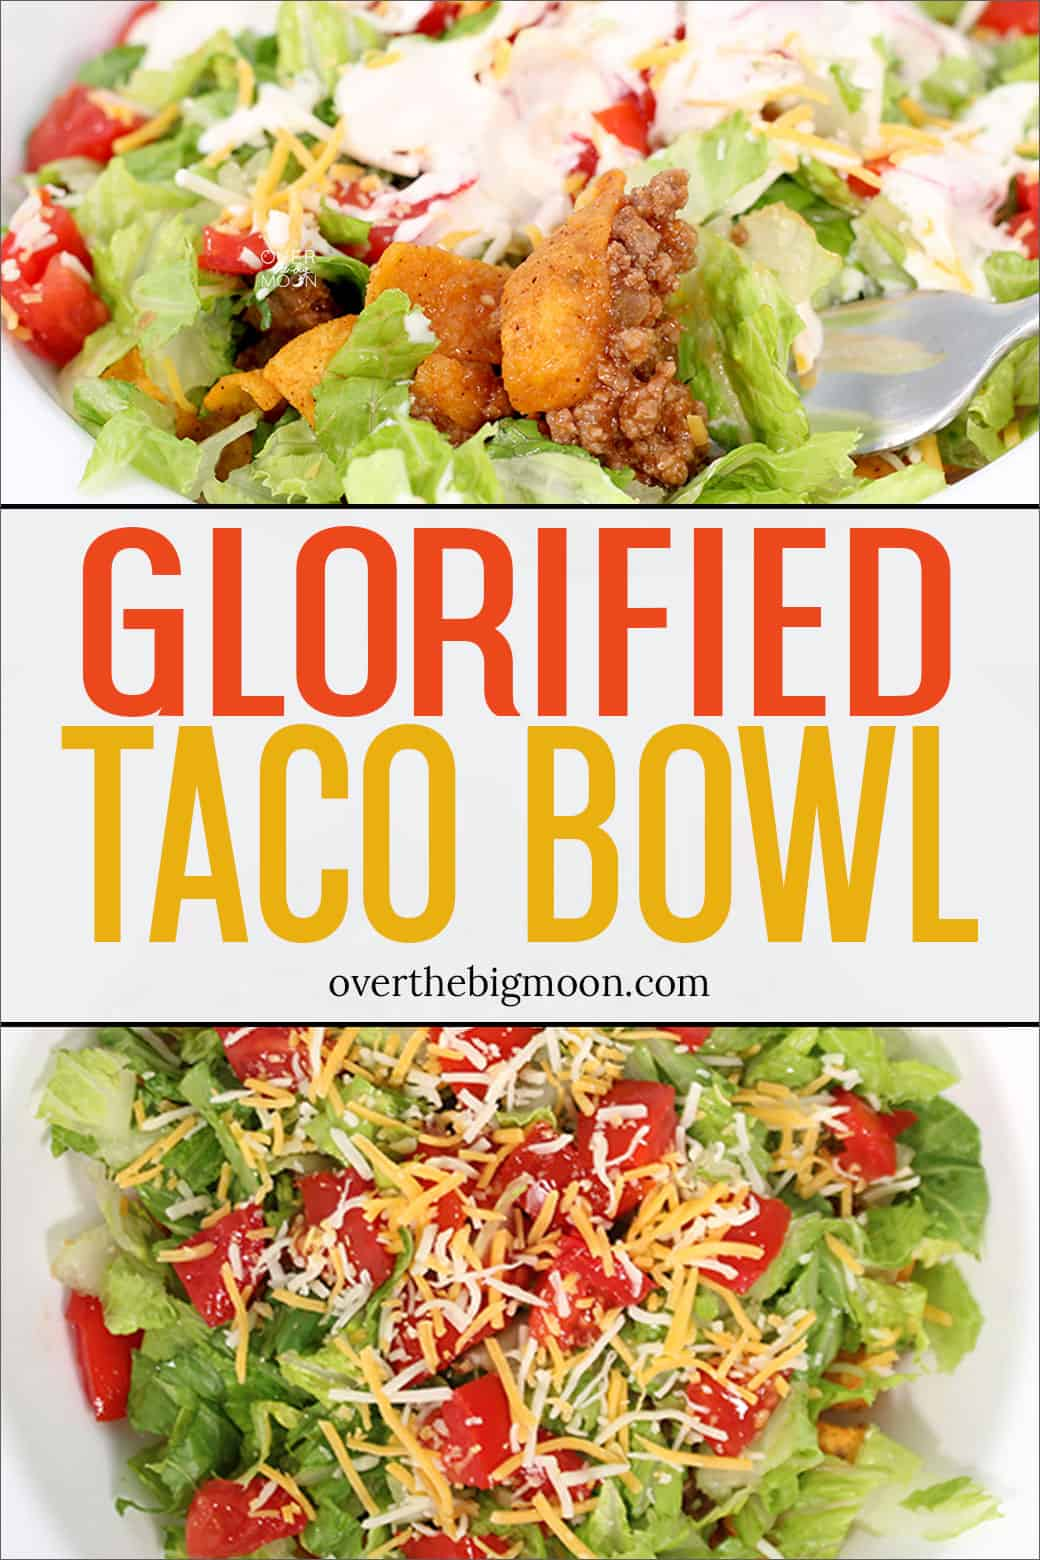 Glorified Taco Bowls are a family favorite dinner. This layered taco bowl contains Chili Cheese Fritos, a tangy hamburger mixture, lettuce, cheese tomatoes and more! From overthebigmoon.com!